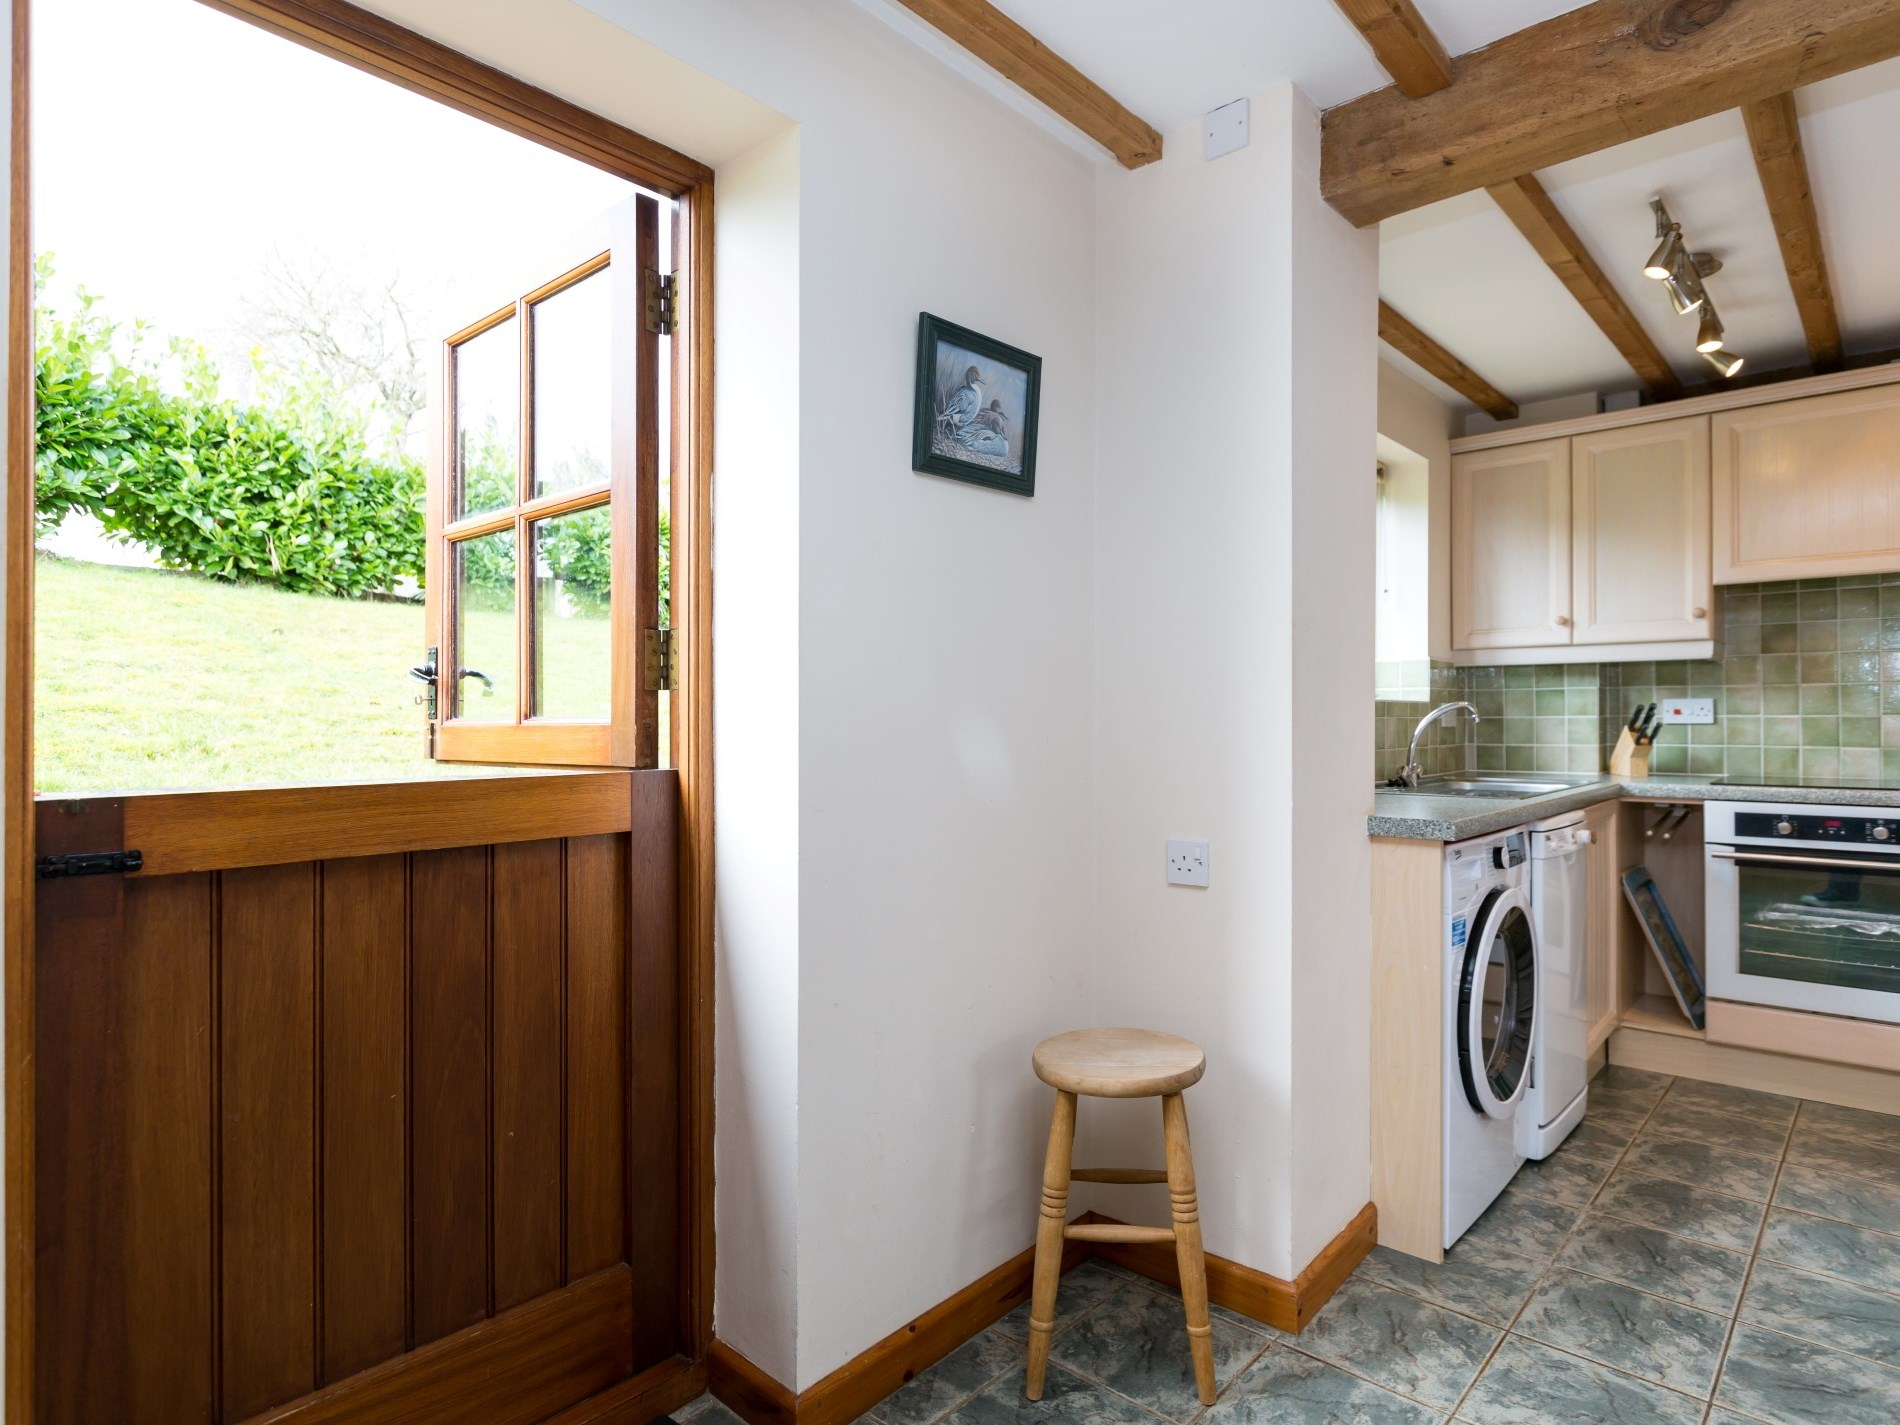 Kitchen area with stable door to outside